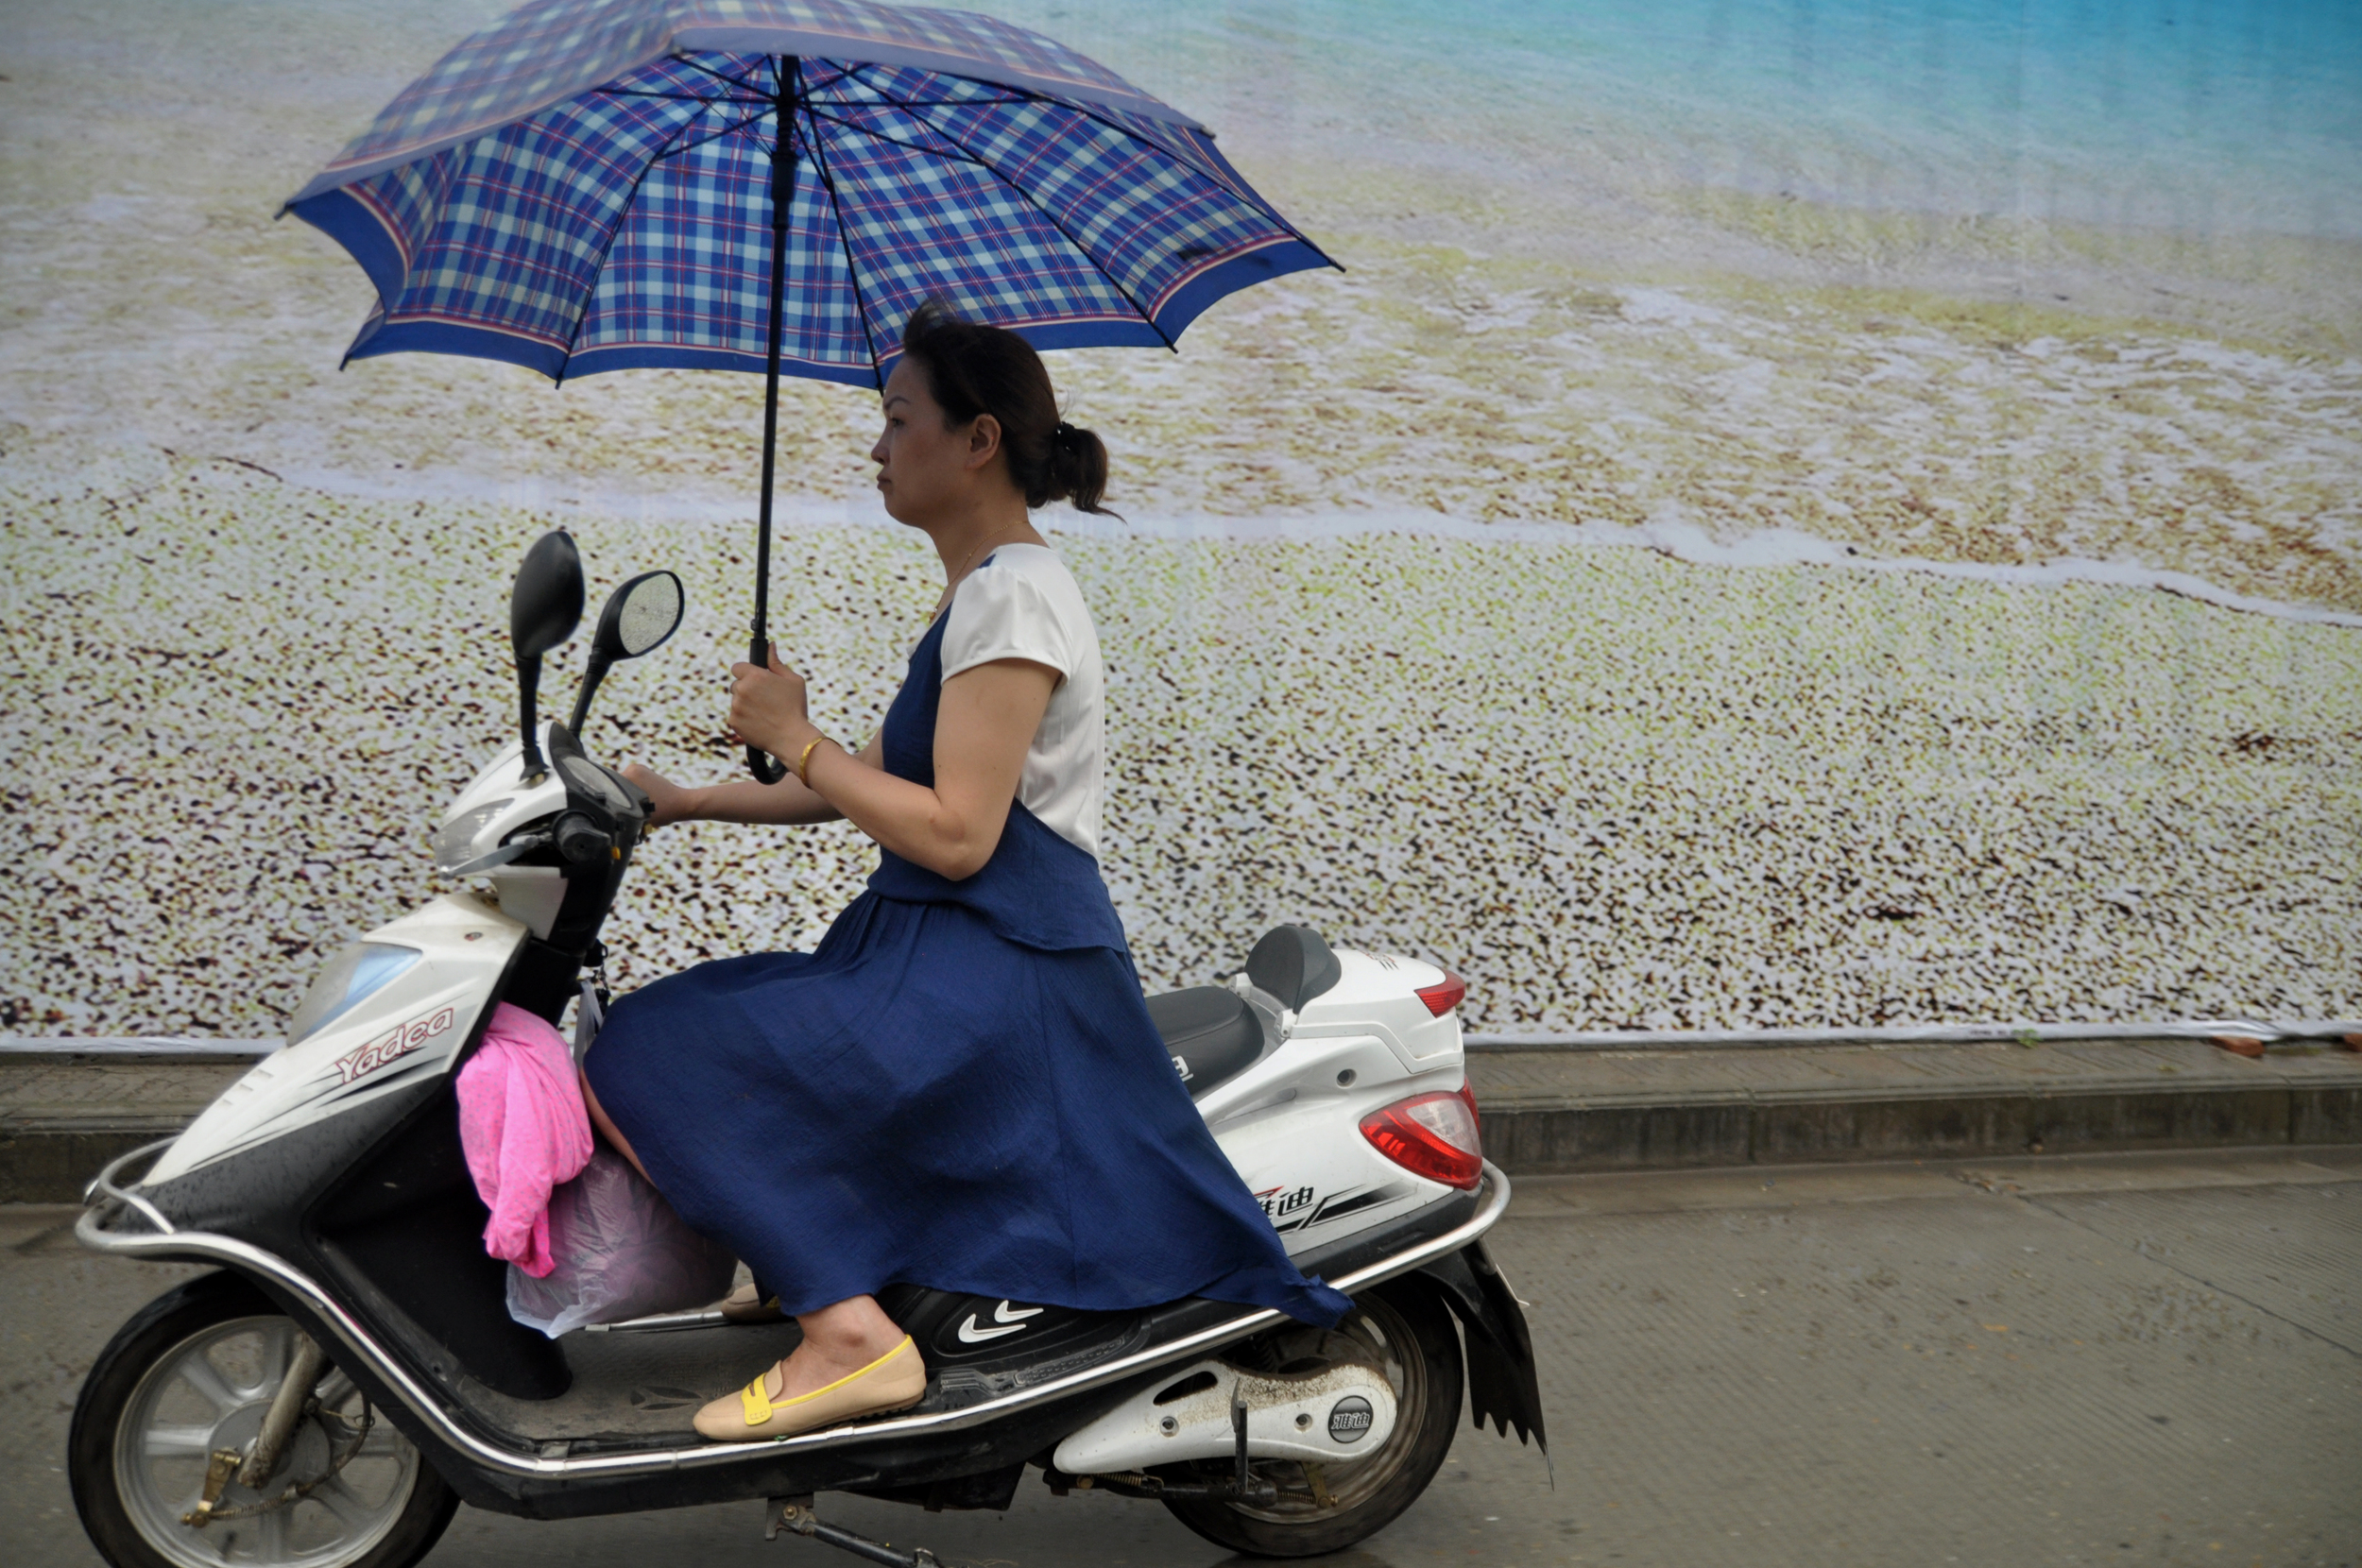 WOMAN ON SCOOTER.jpg